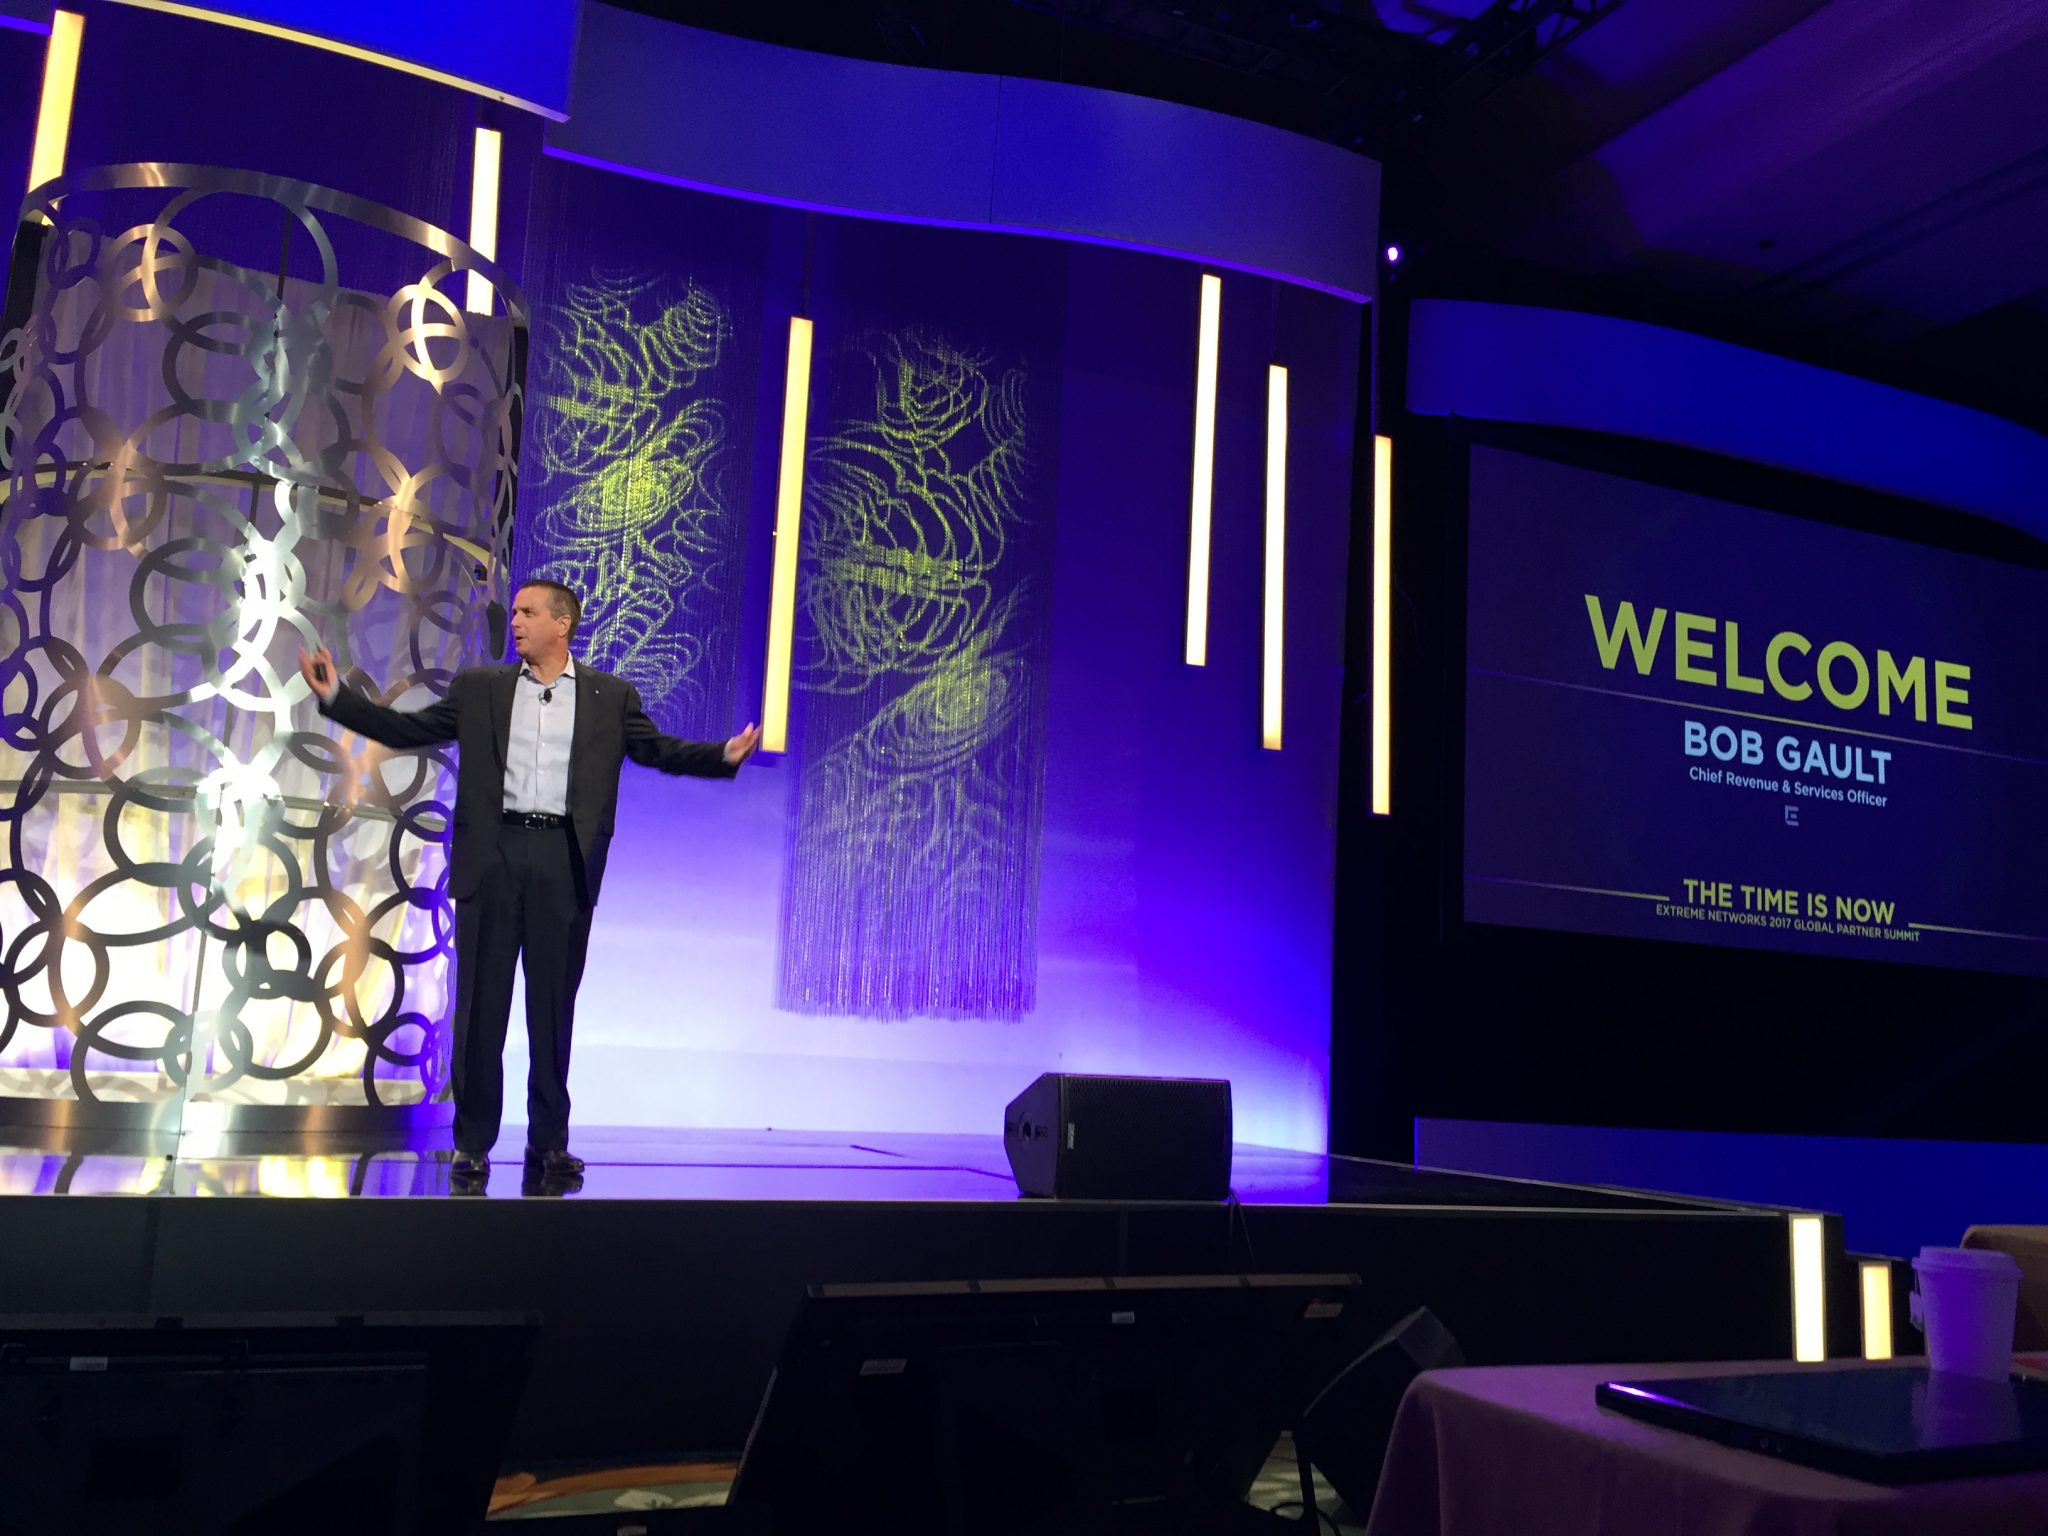 Extreme Networks' Bob Gault on stage at the company's global partner summit